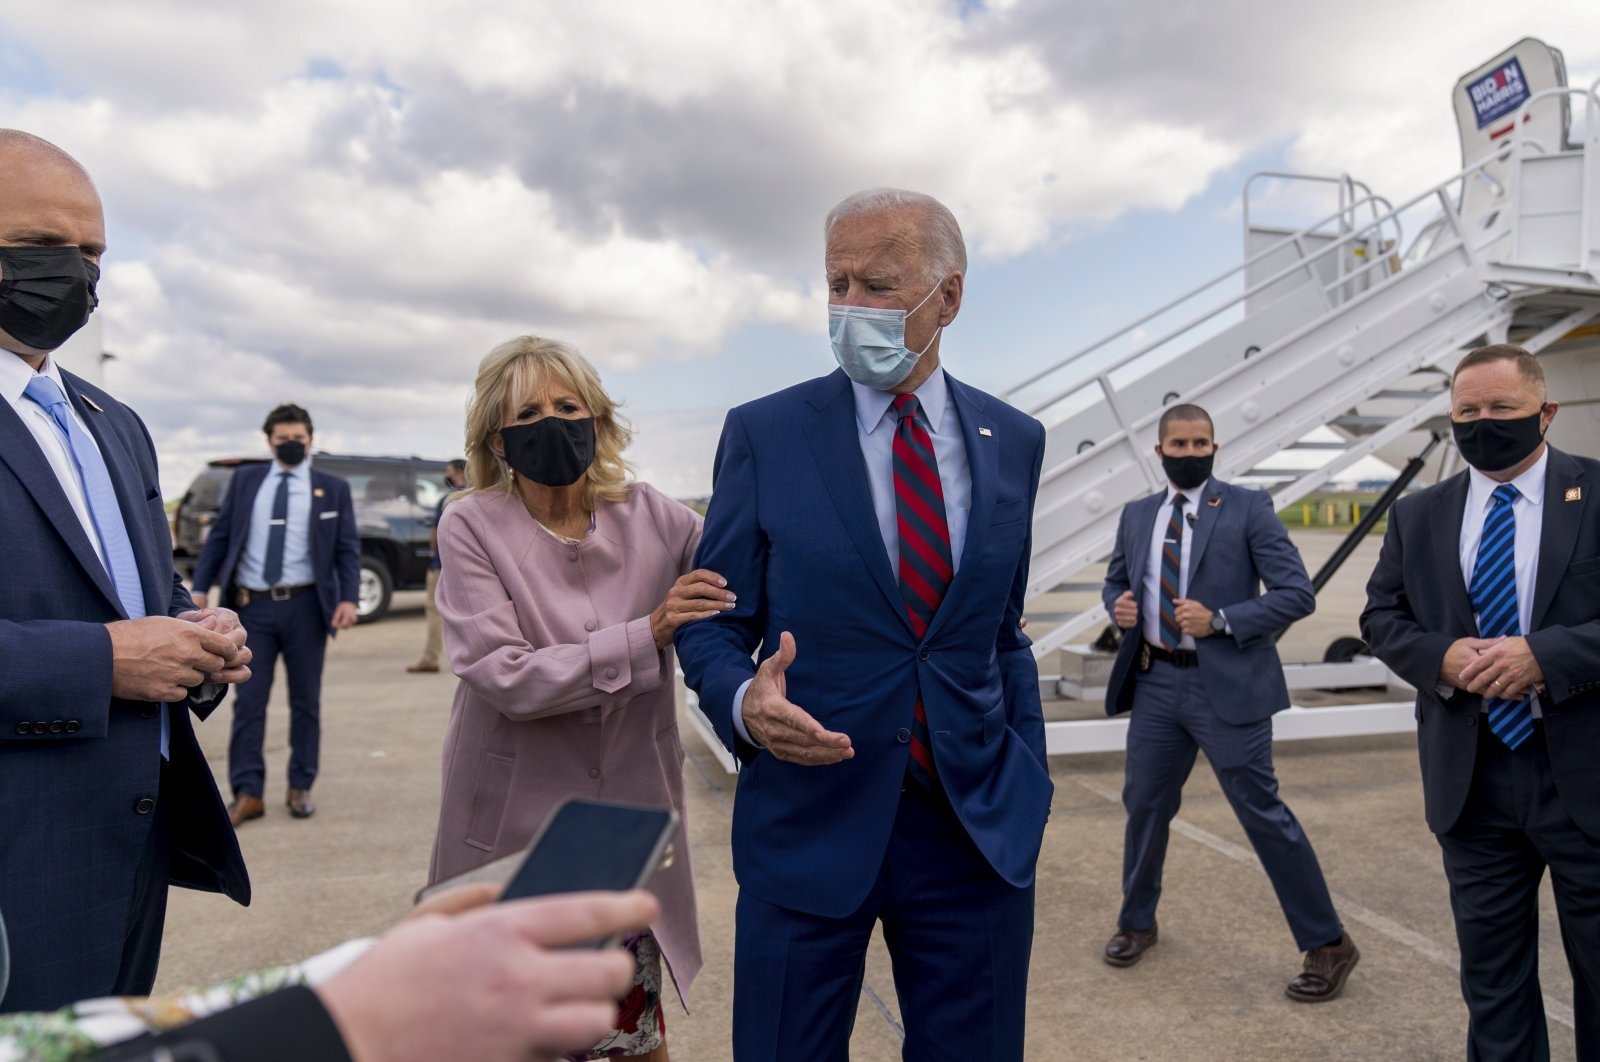 Jill Biden moves her husband, Democratic presidential candidate former Vice President Joe Biden, back from members of the media as he speaks outside his campaign plane in New Castle, Del., on Oct. 5, 2020. (AP Photo)